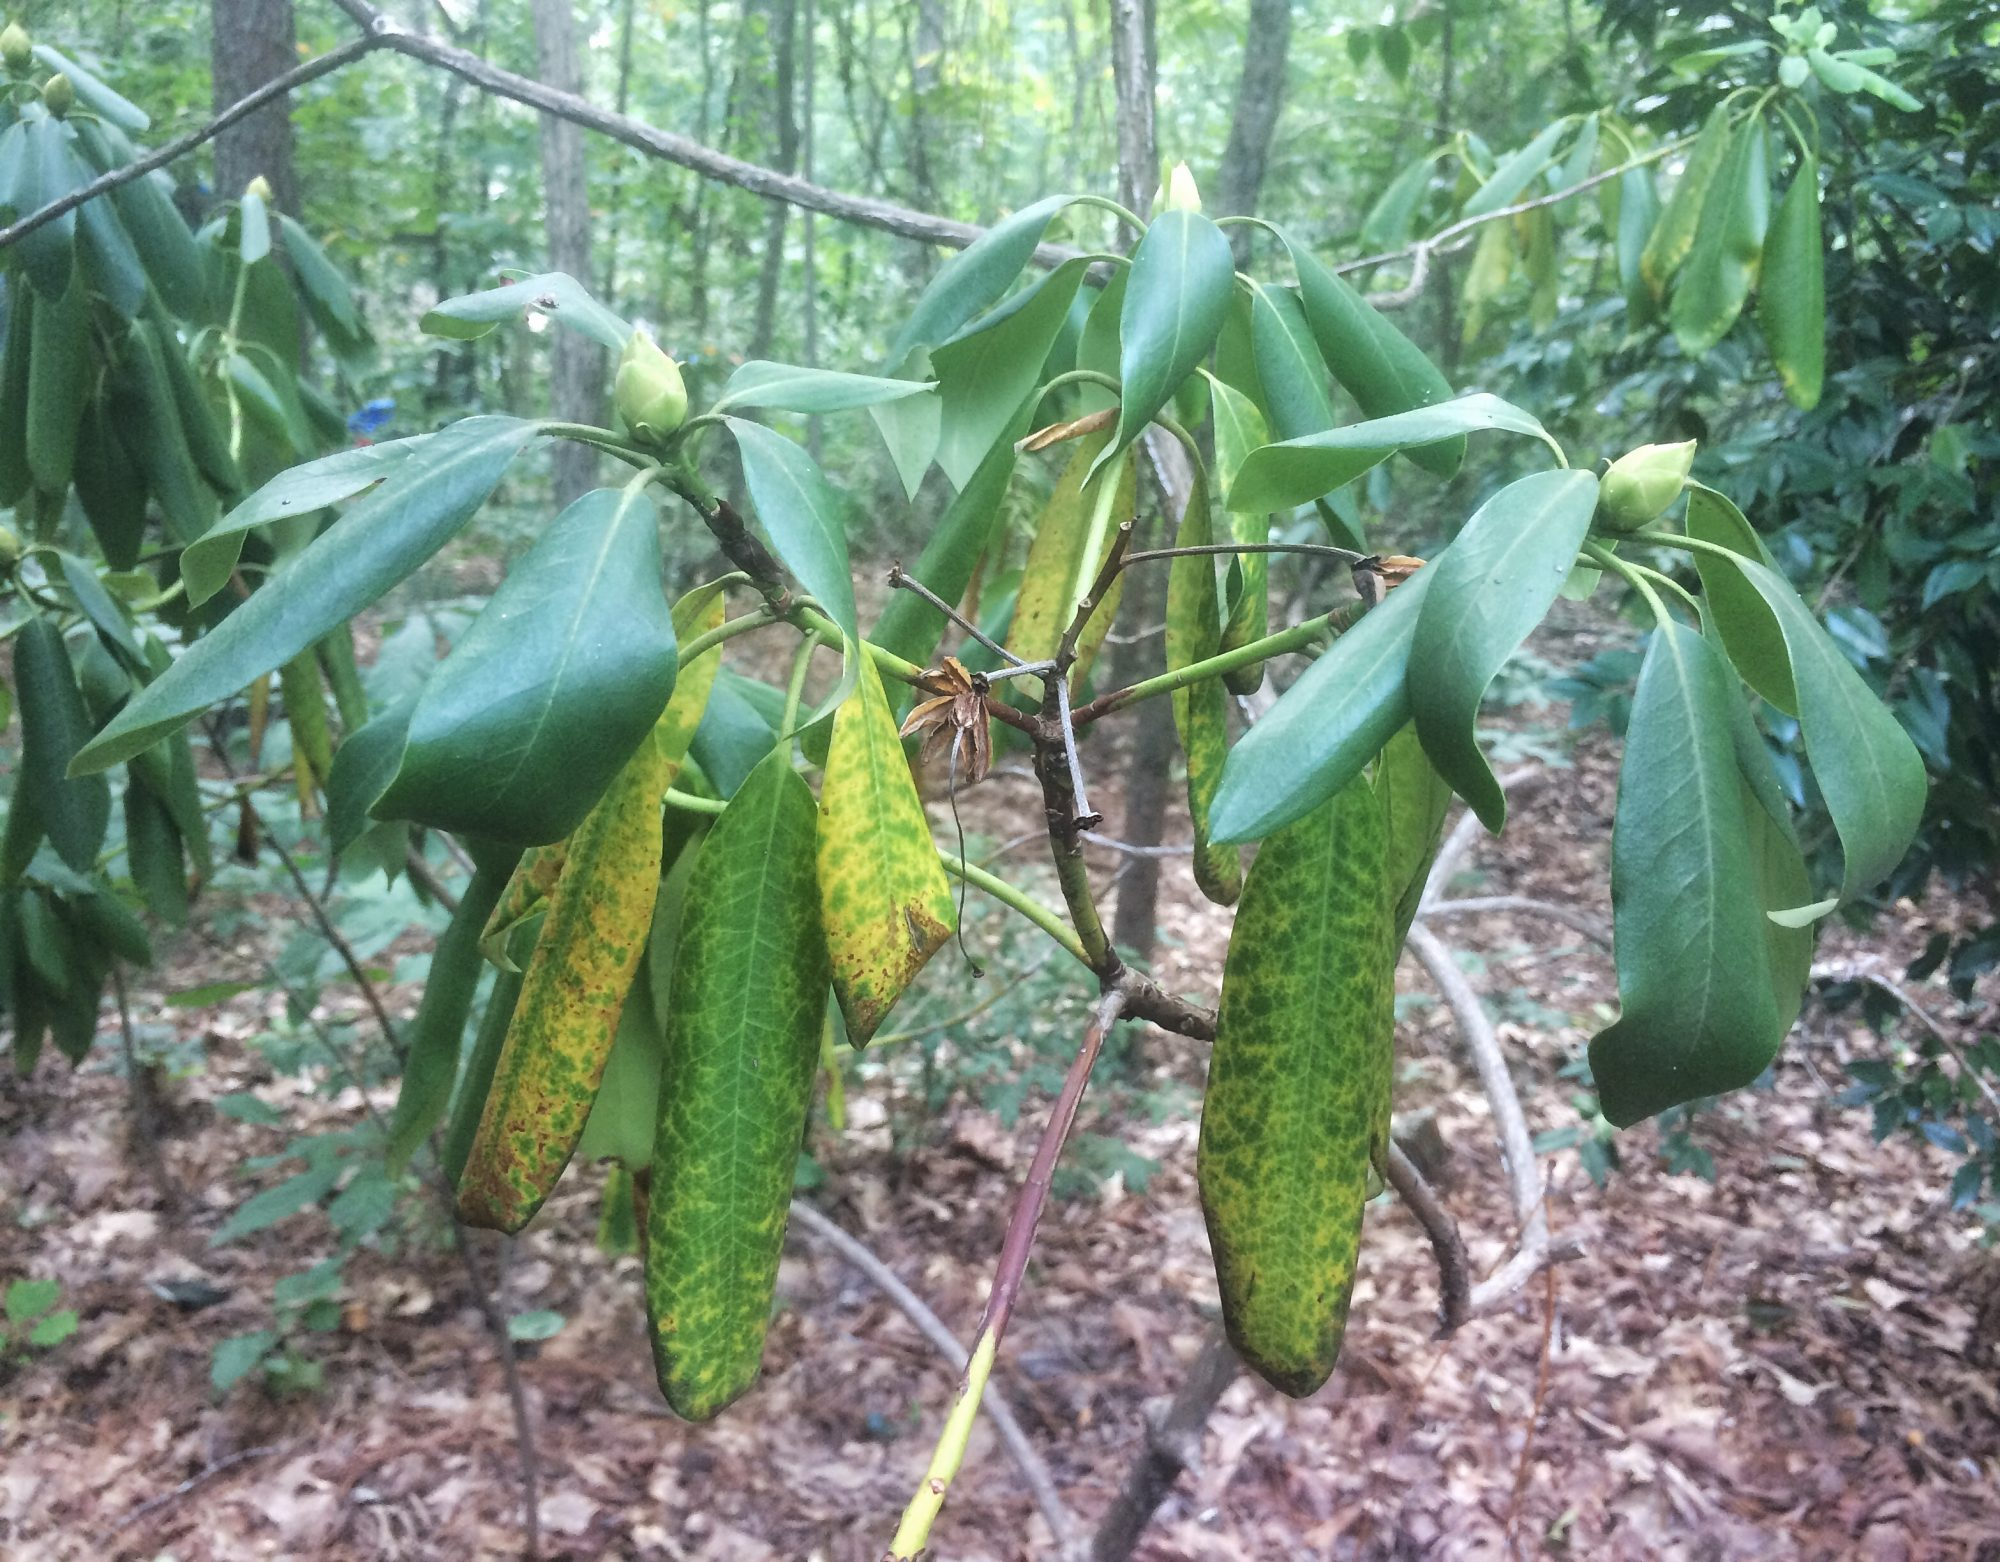 Dying Carolina rhododendron